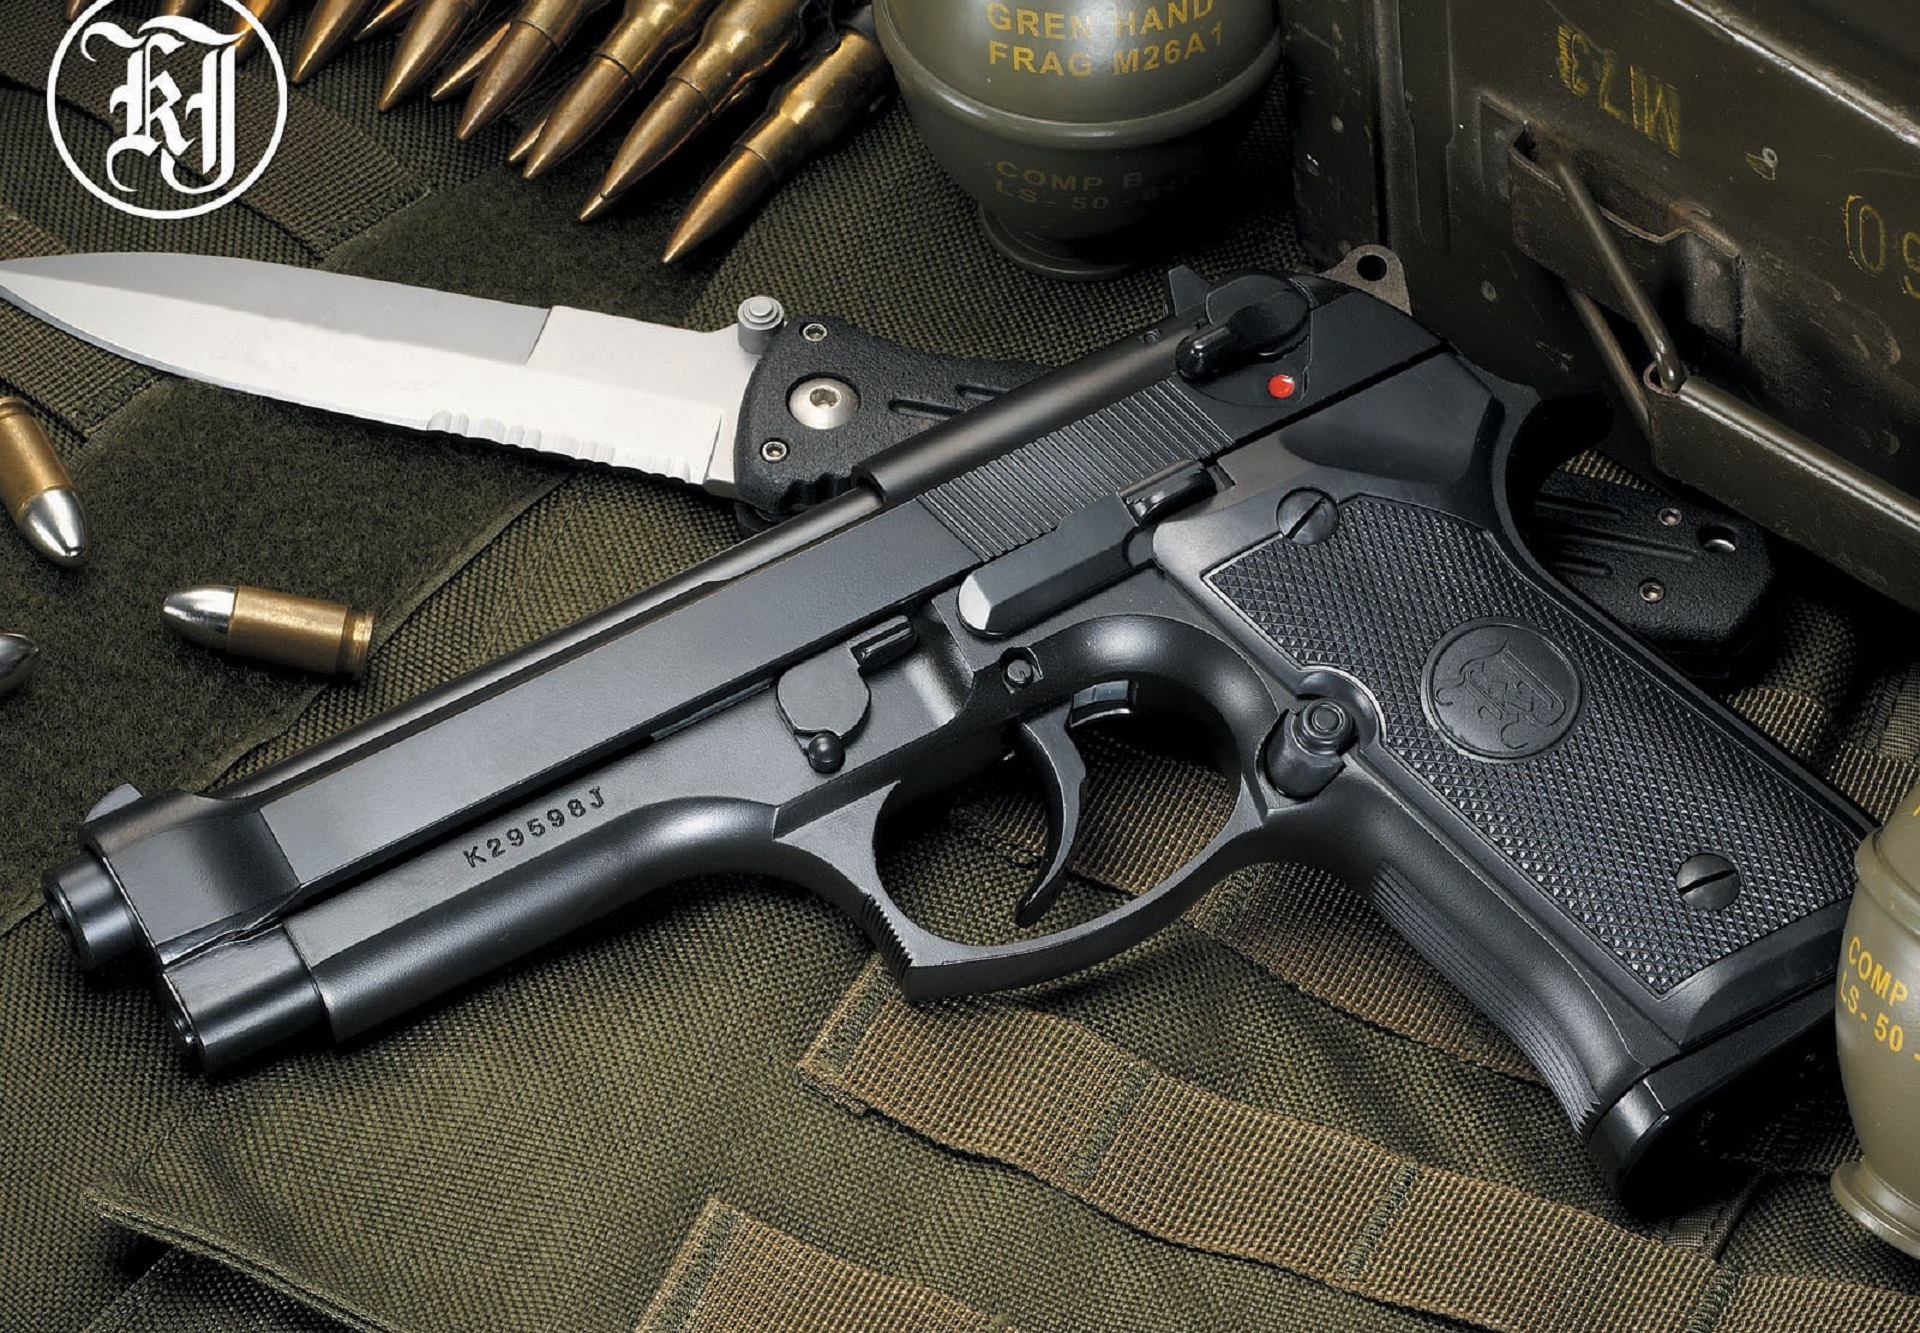 Beretta 92fs High Quality Wallpapers